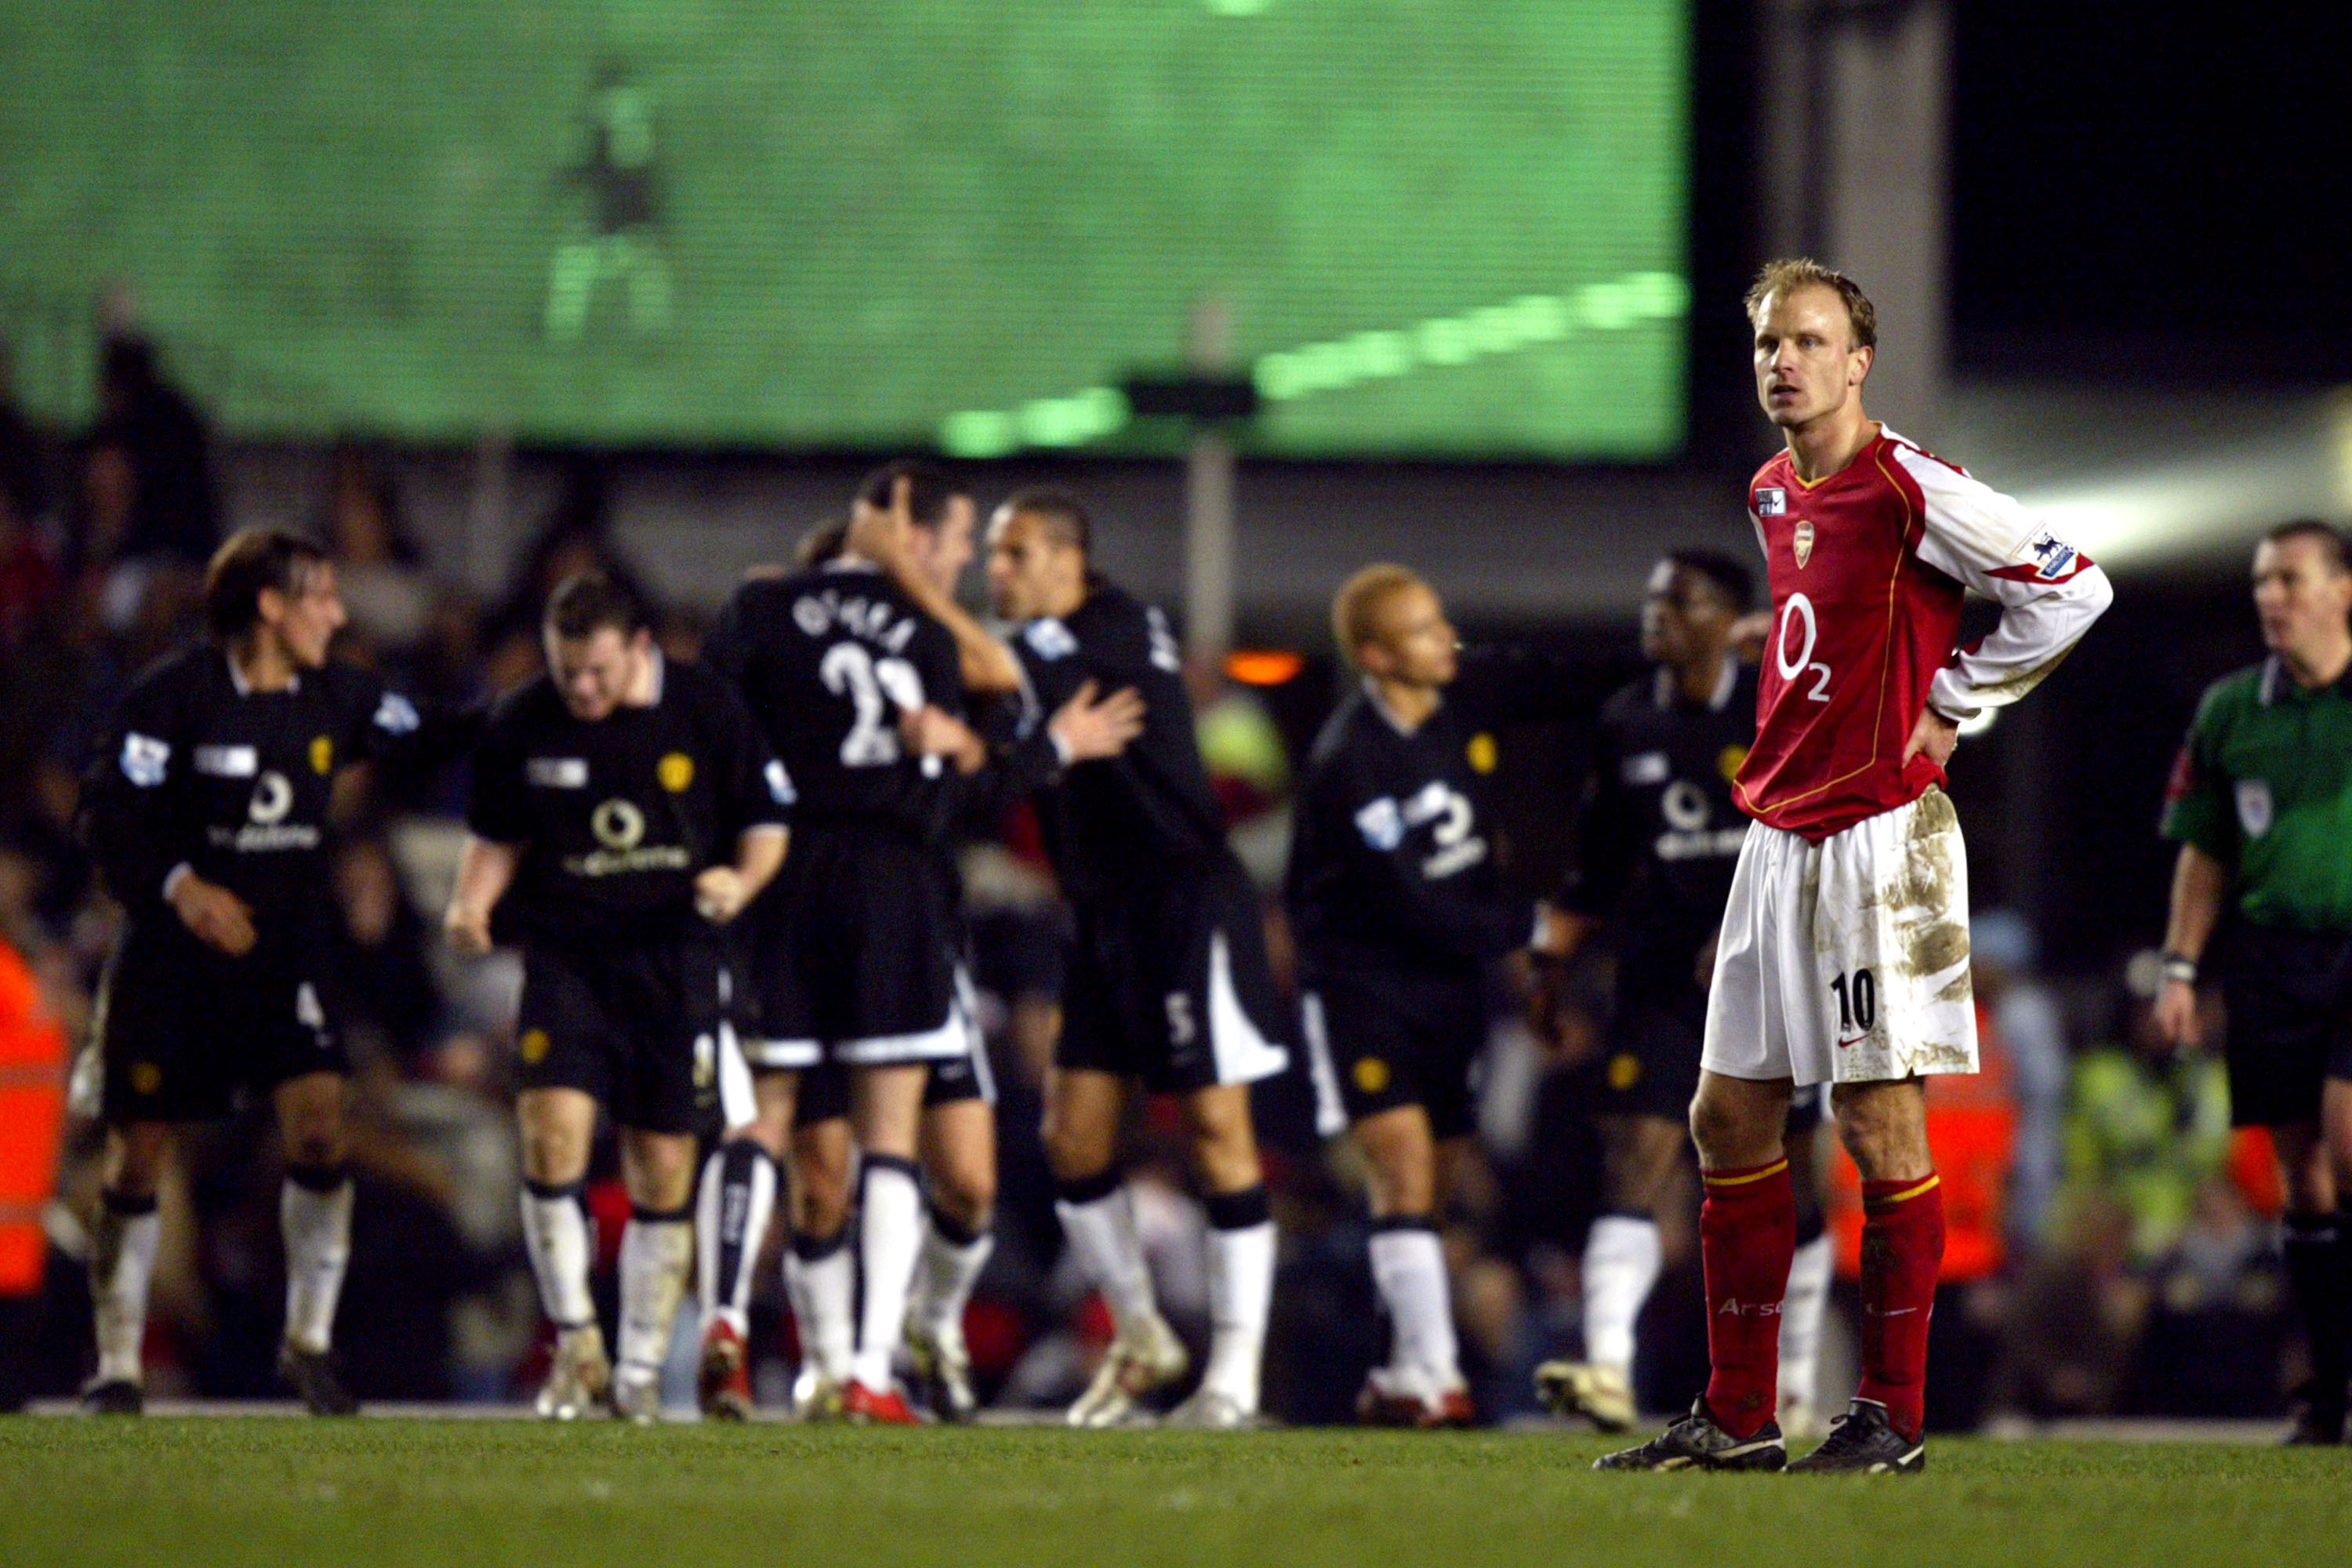 Manchester United players celebrate while Dennis Bergkamp looks on